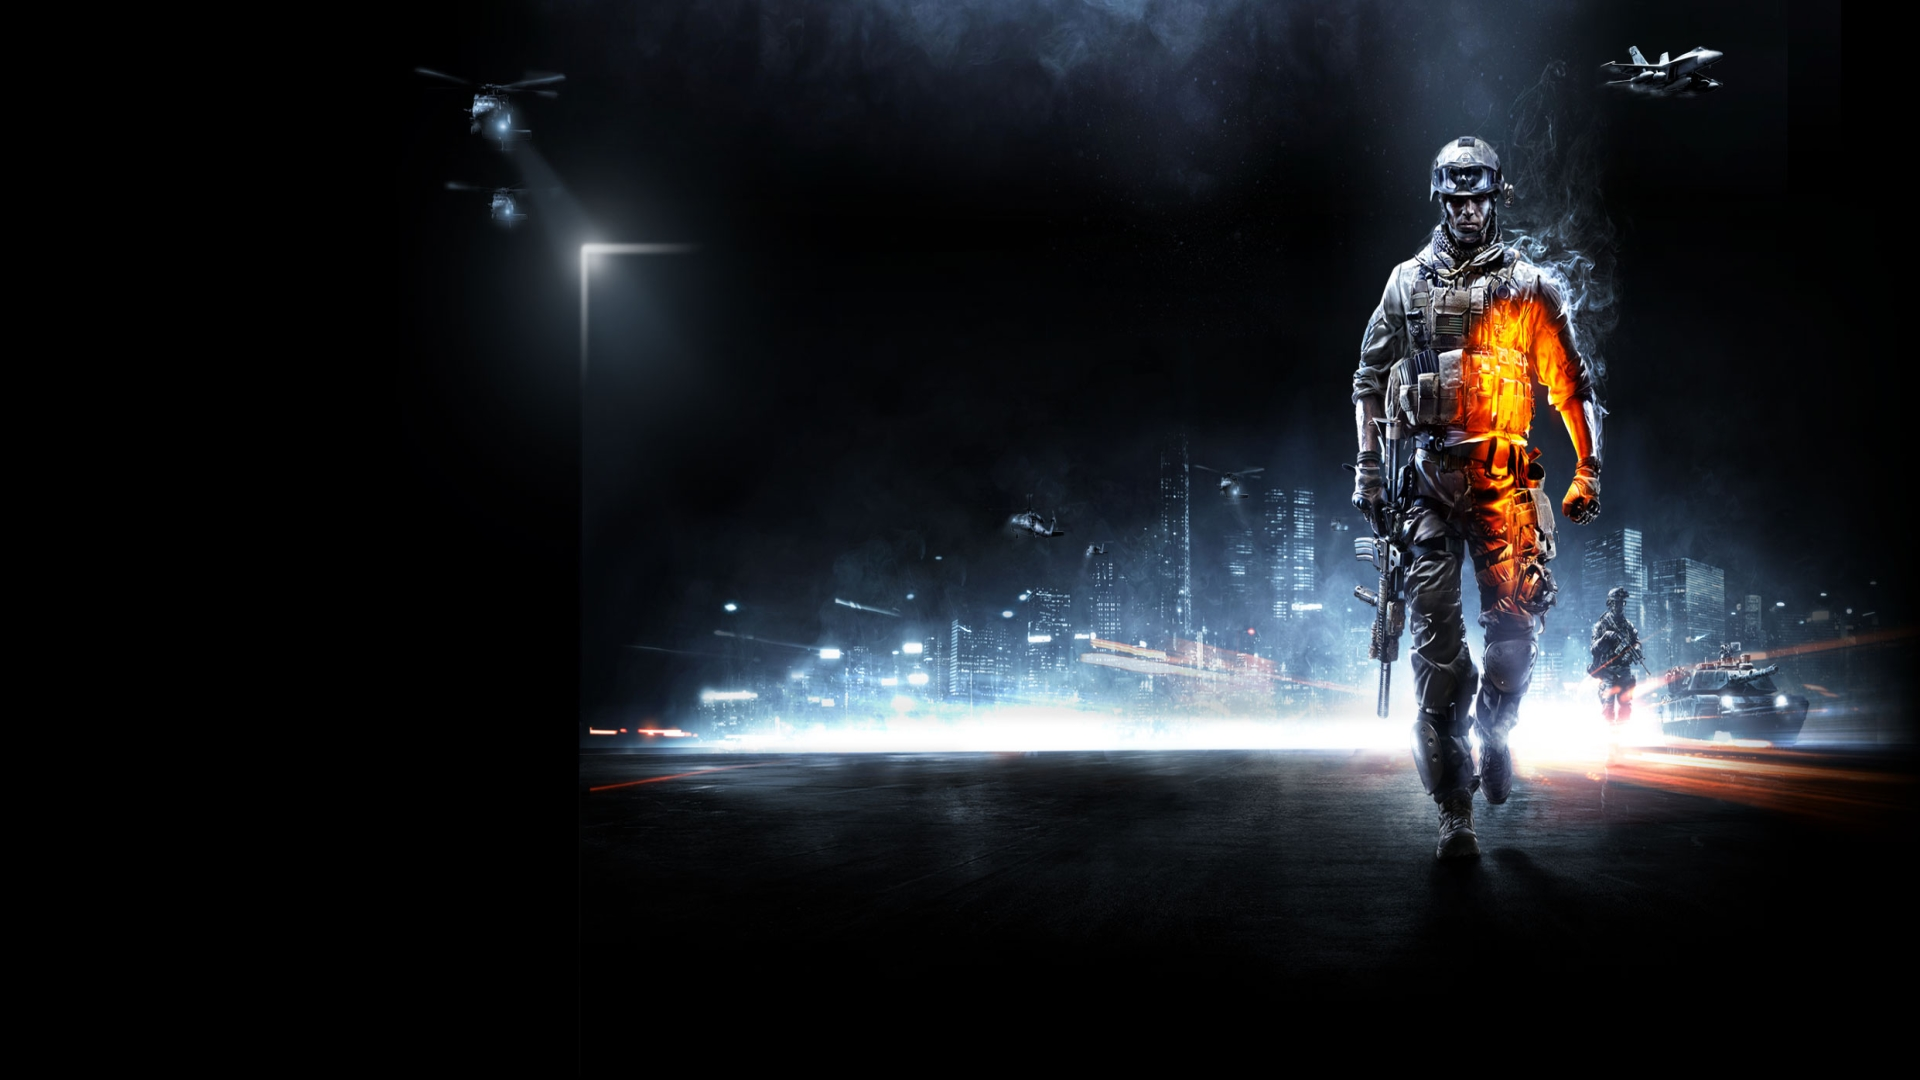 battlefield 3 hd wallpapers | i have a pc